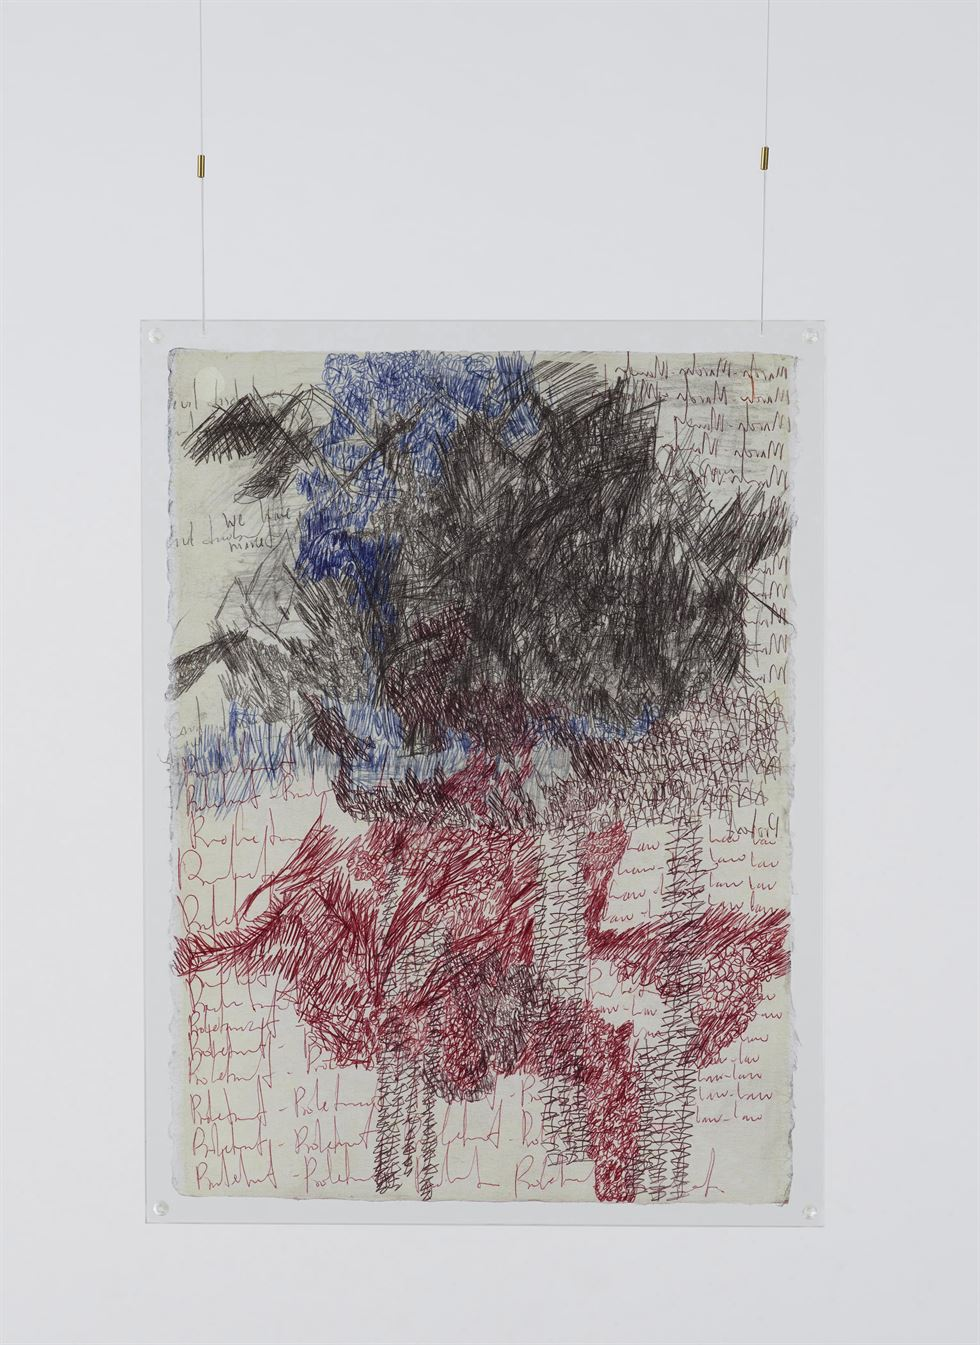 Oscar Murillo's 'Pulsating Frequencies' is on view at Kukje Gallery in Seoul / Courtesy of the artist and Kukje Gallery